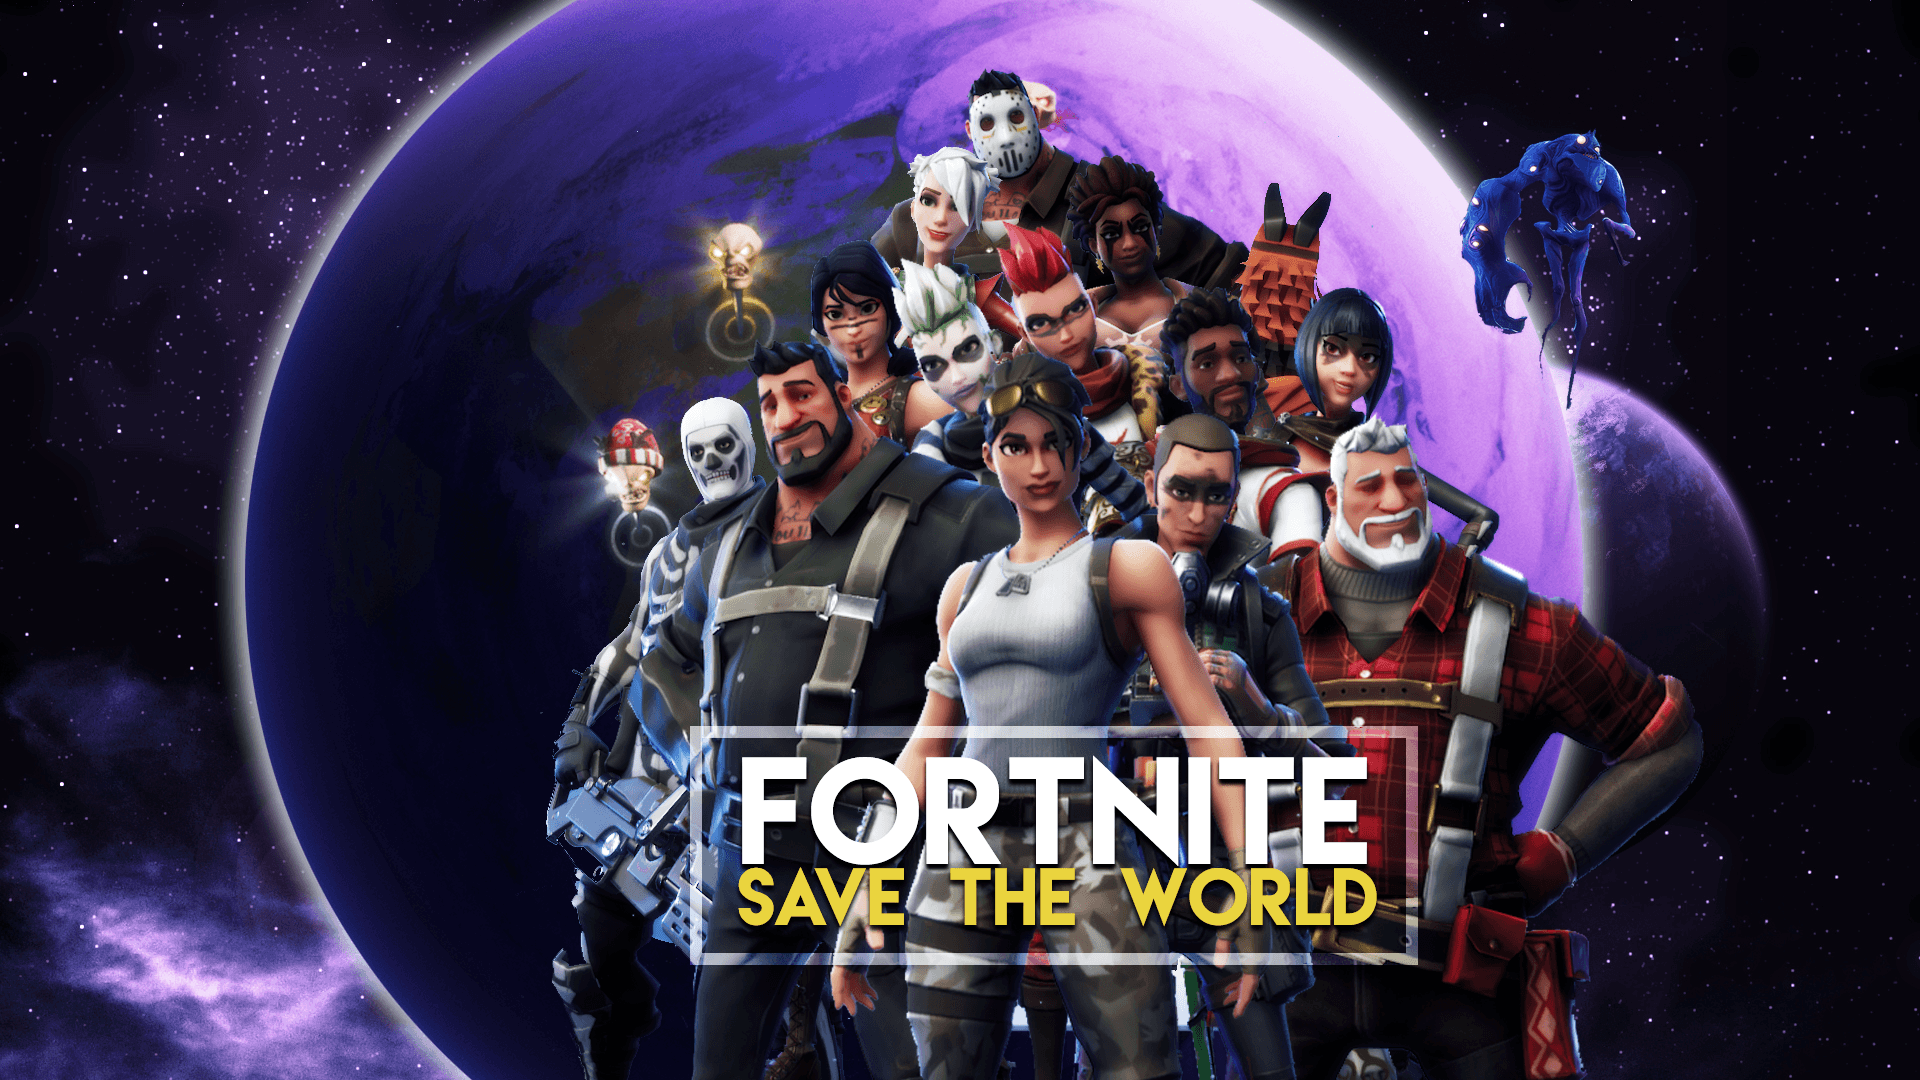 Fortnite Logo Wallpapers Top Free Fortnite Logo Backgrounds Wallpaperaccess